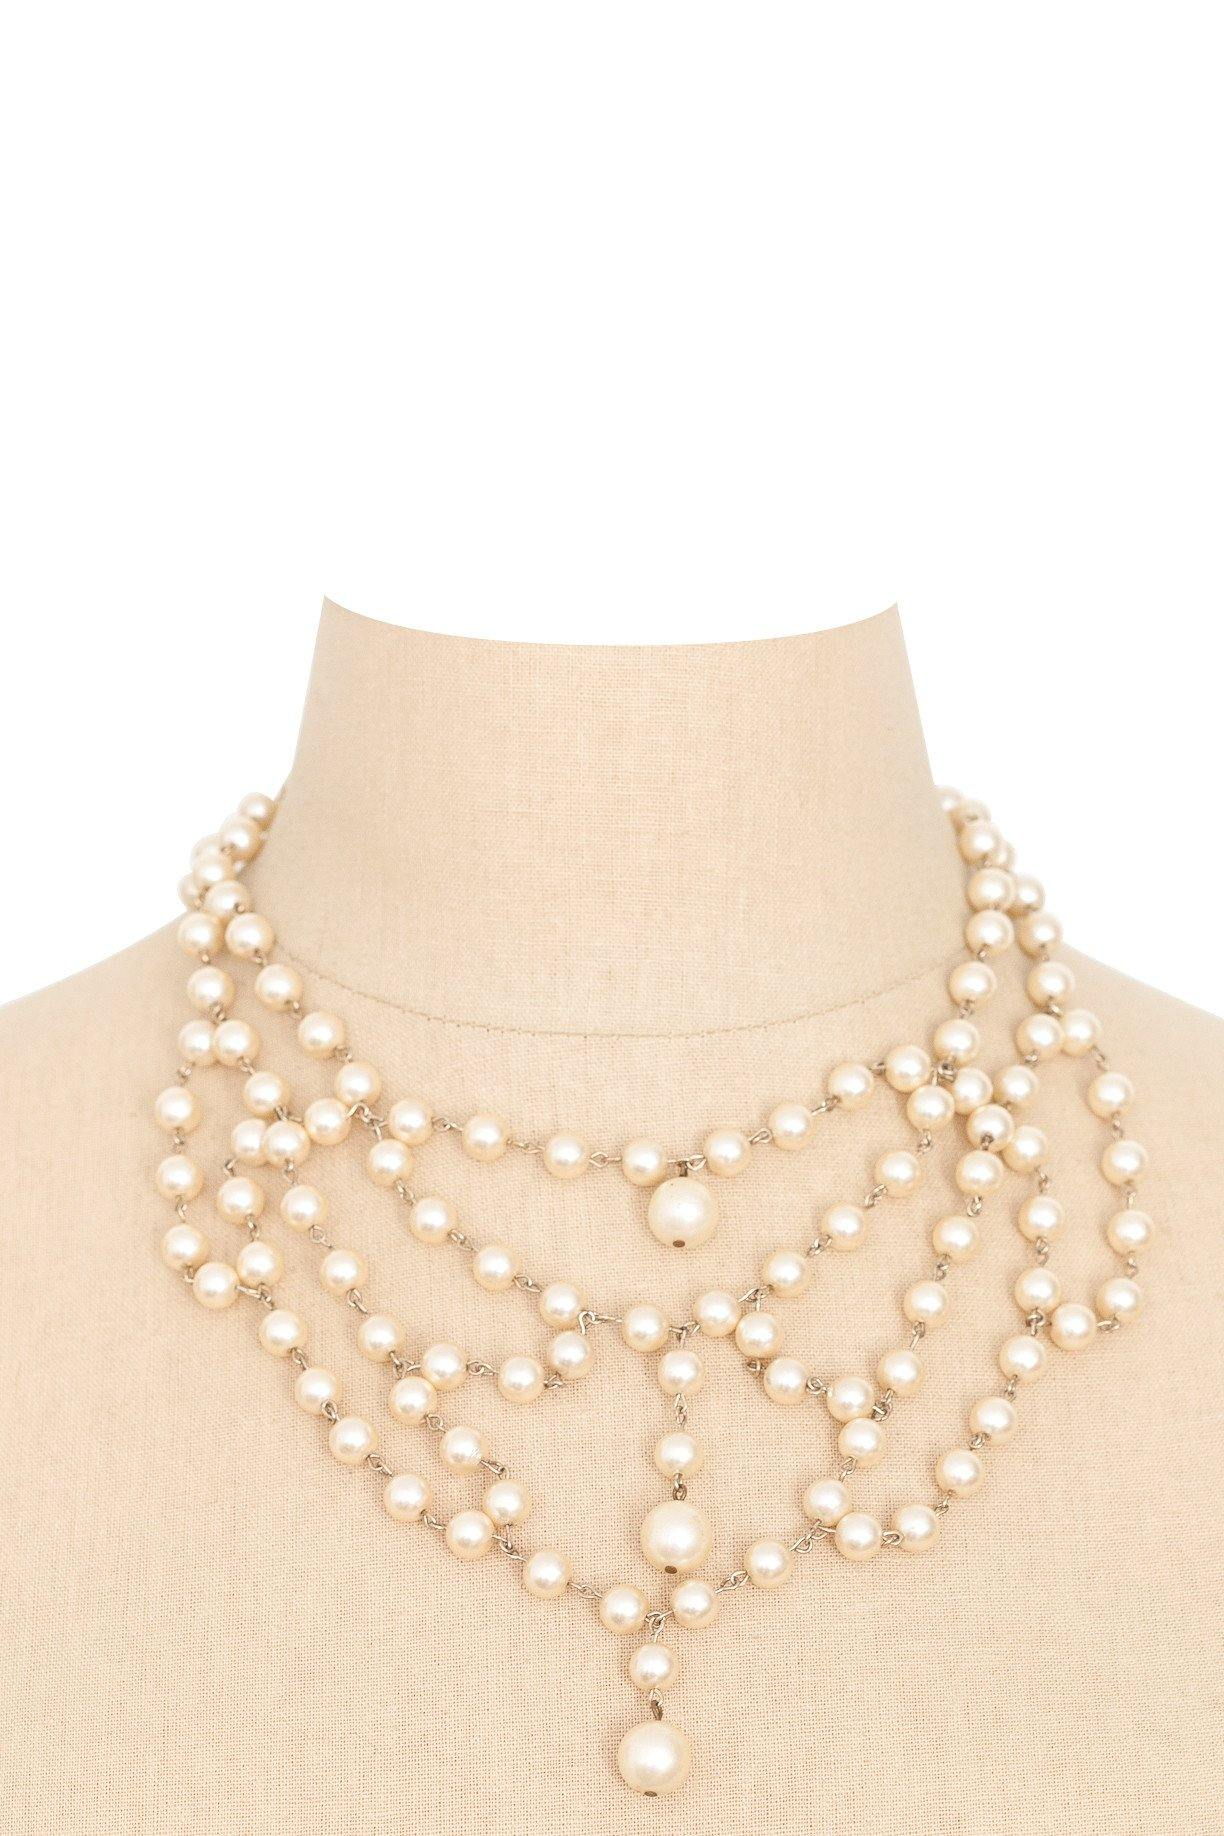 50's__Vintage__Pearl Statement Necklace